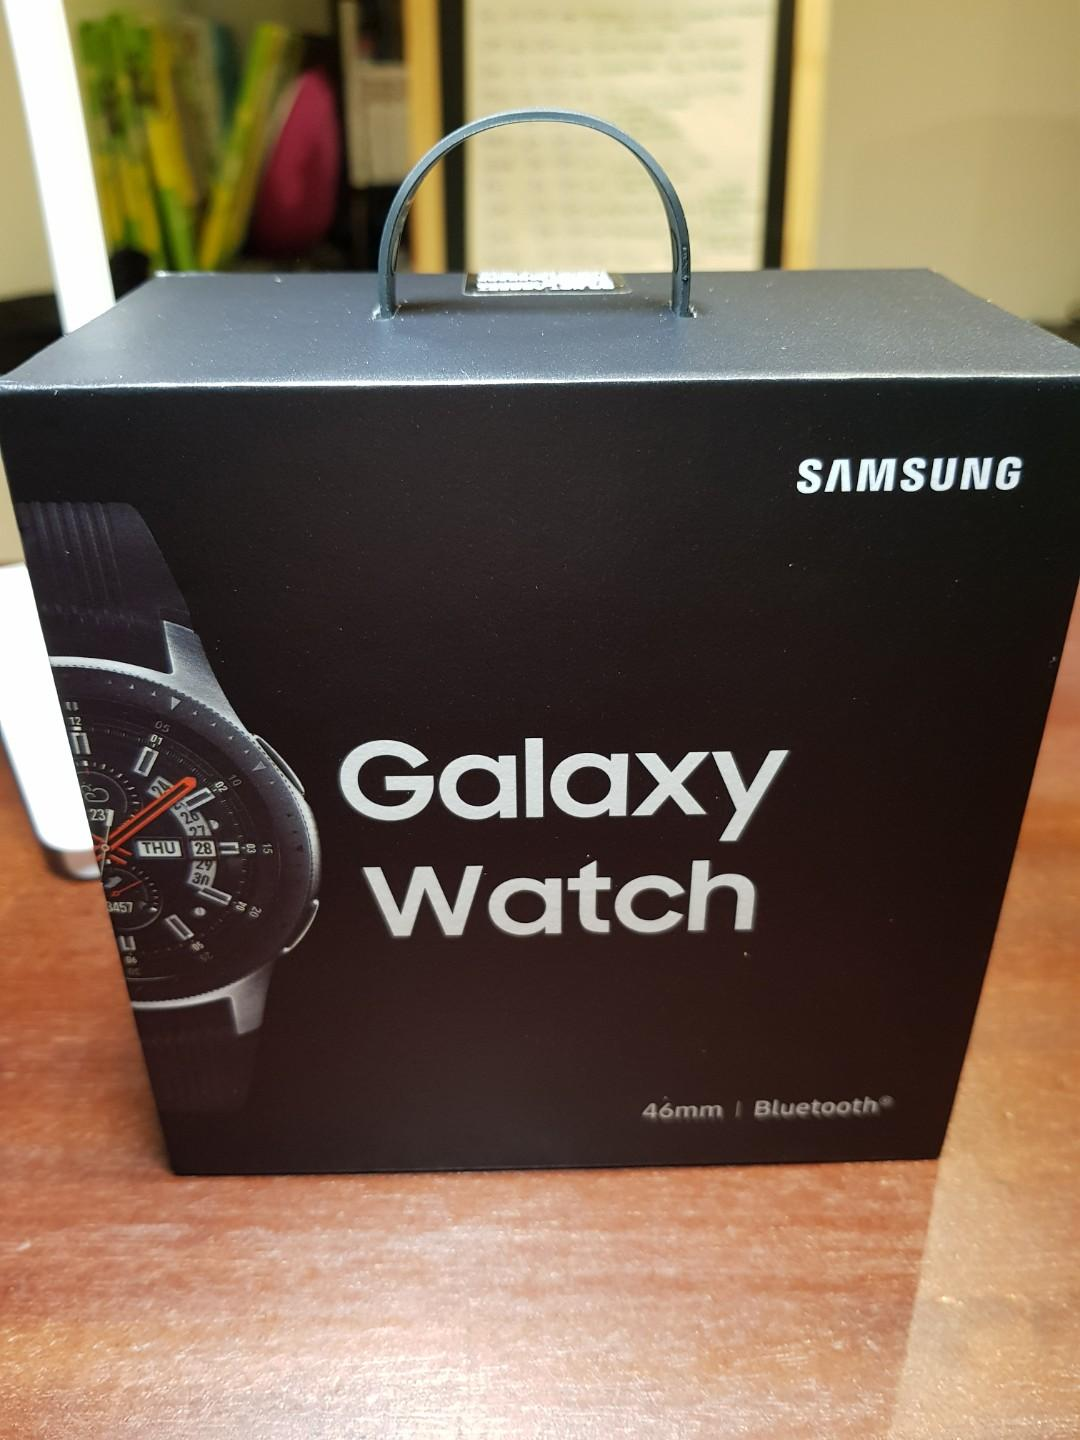 Brand New, Sealed Samsung Galaxy Watch - 46mm Bluetooth